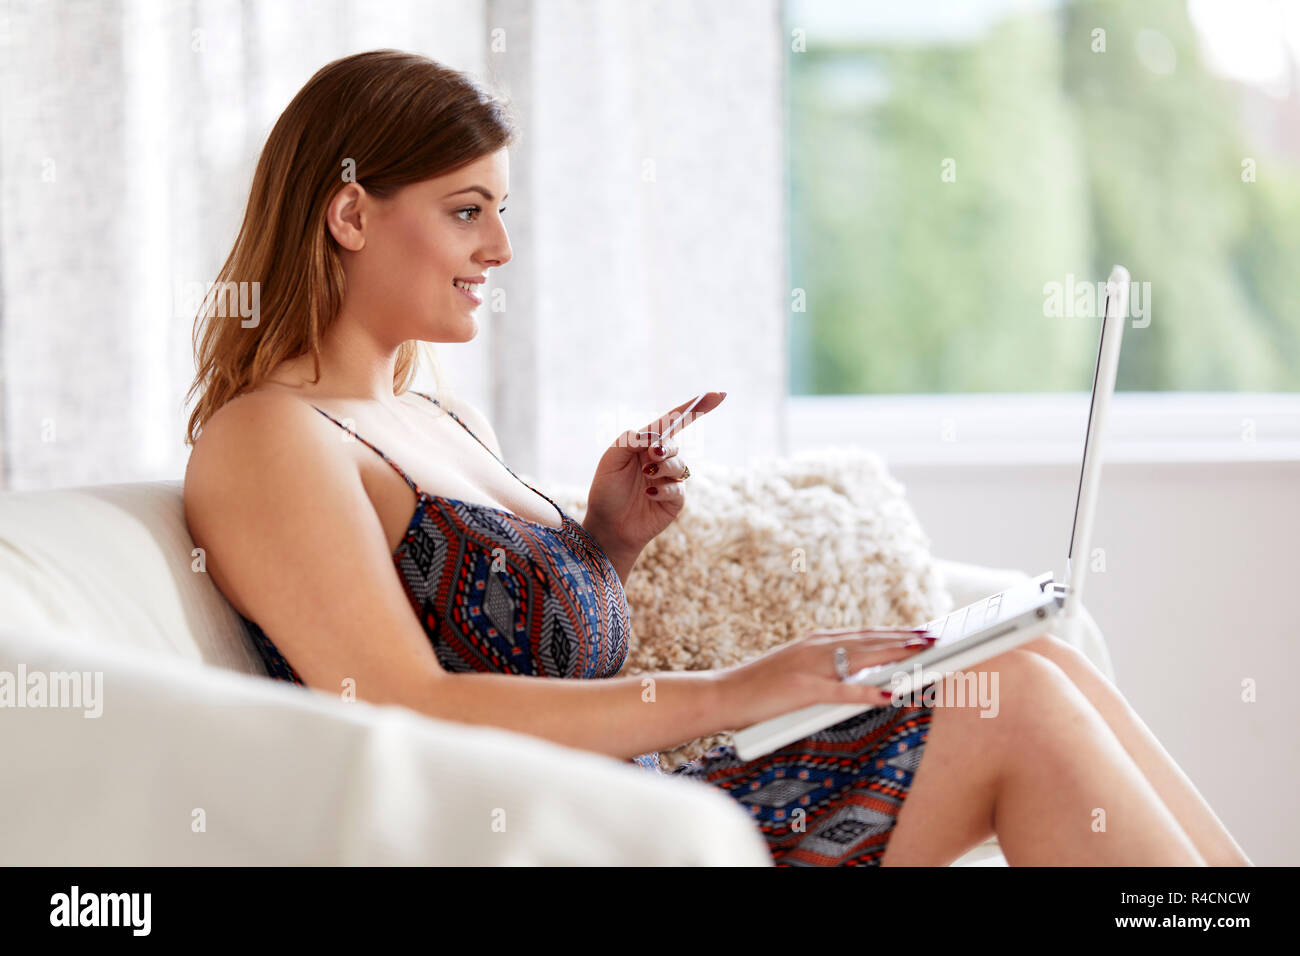 Woman shopping online - Stock Image